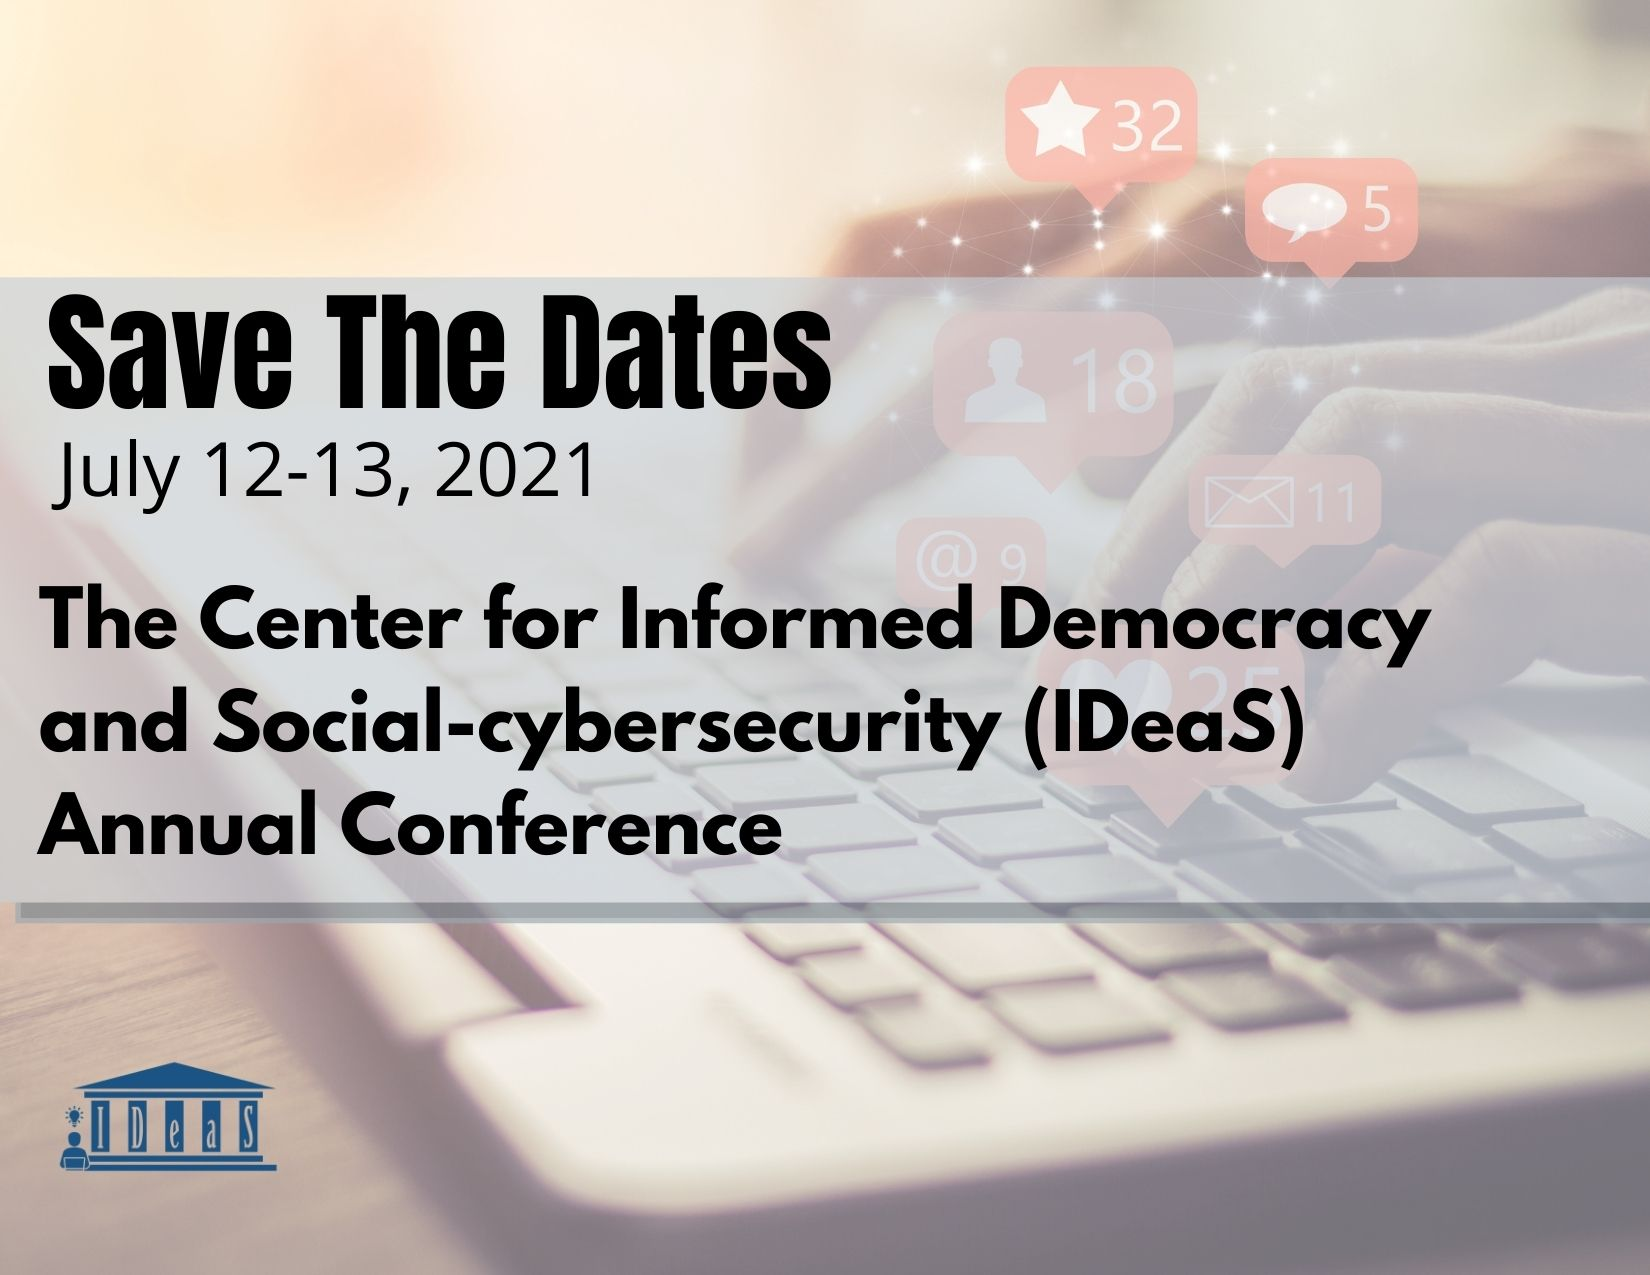 Cfp 2021 Ideas Conference Center For Informed Democracy Social Cybersecurity Ideas Carnegie Mellon University